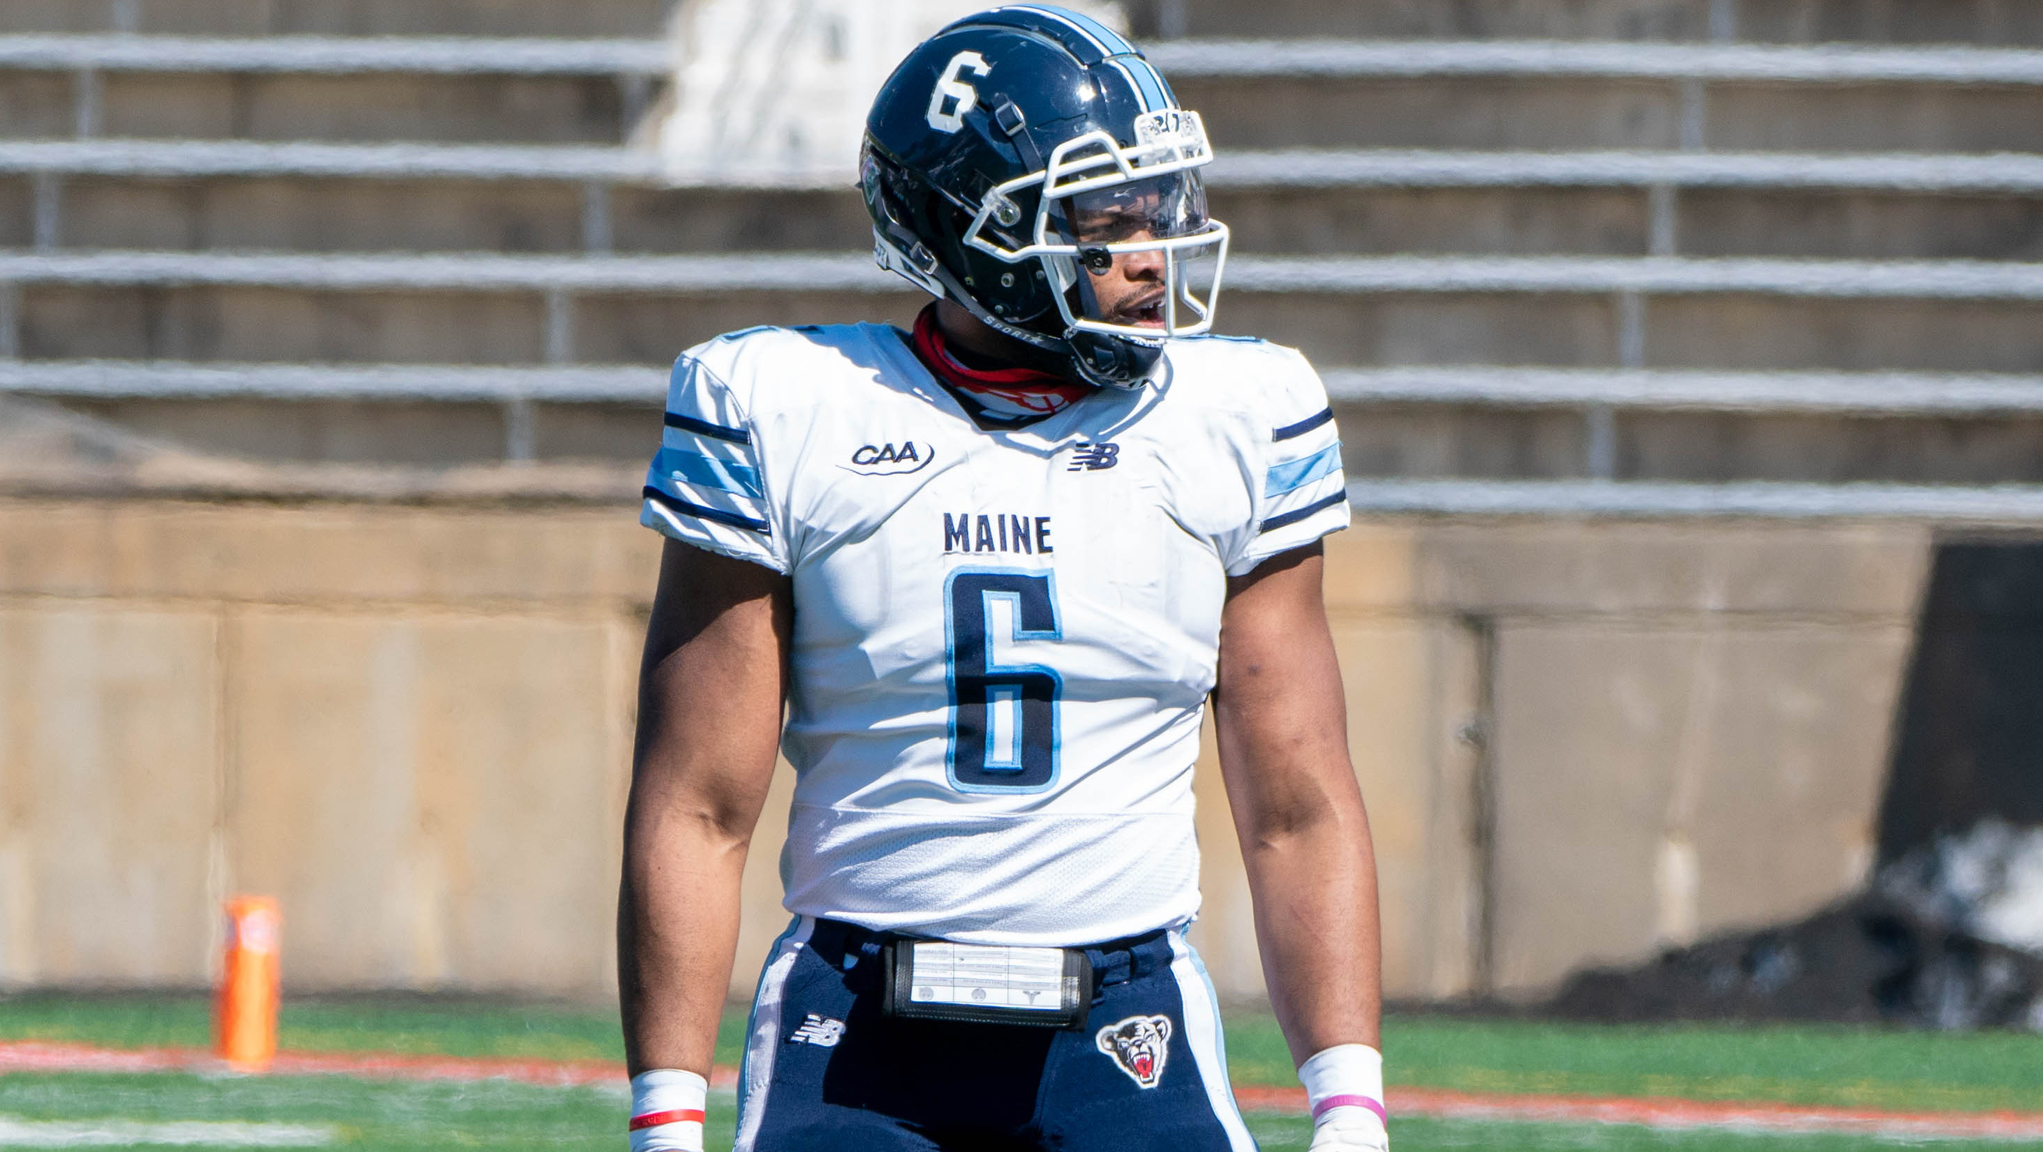 University of Maine Athletics